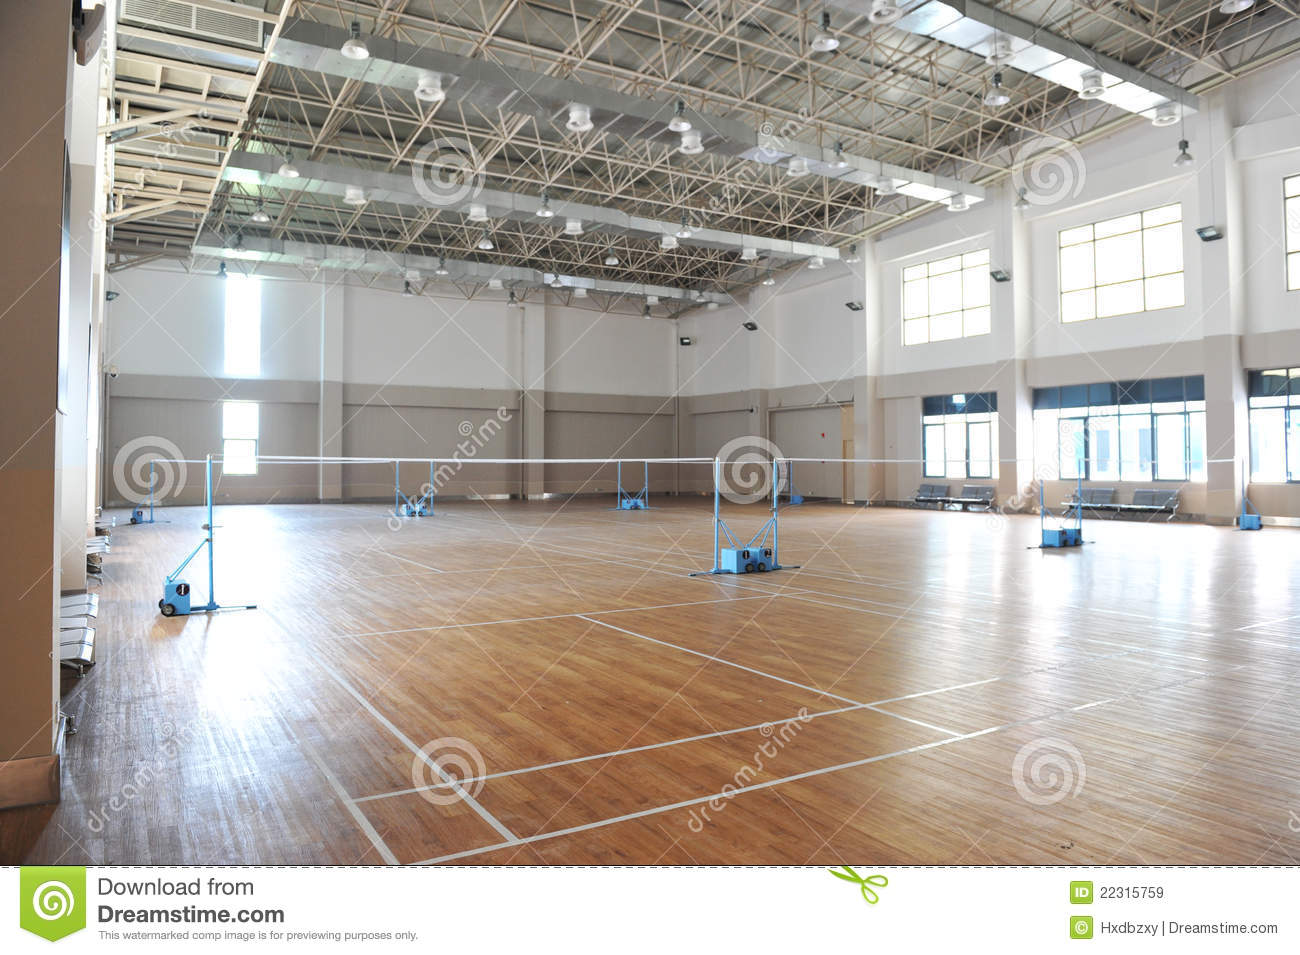 Badminton Court Royalty Free Stock Images Image 22315759